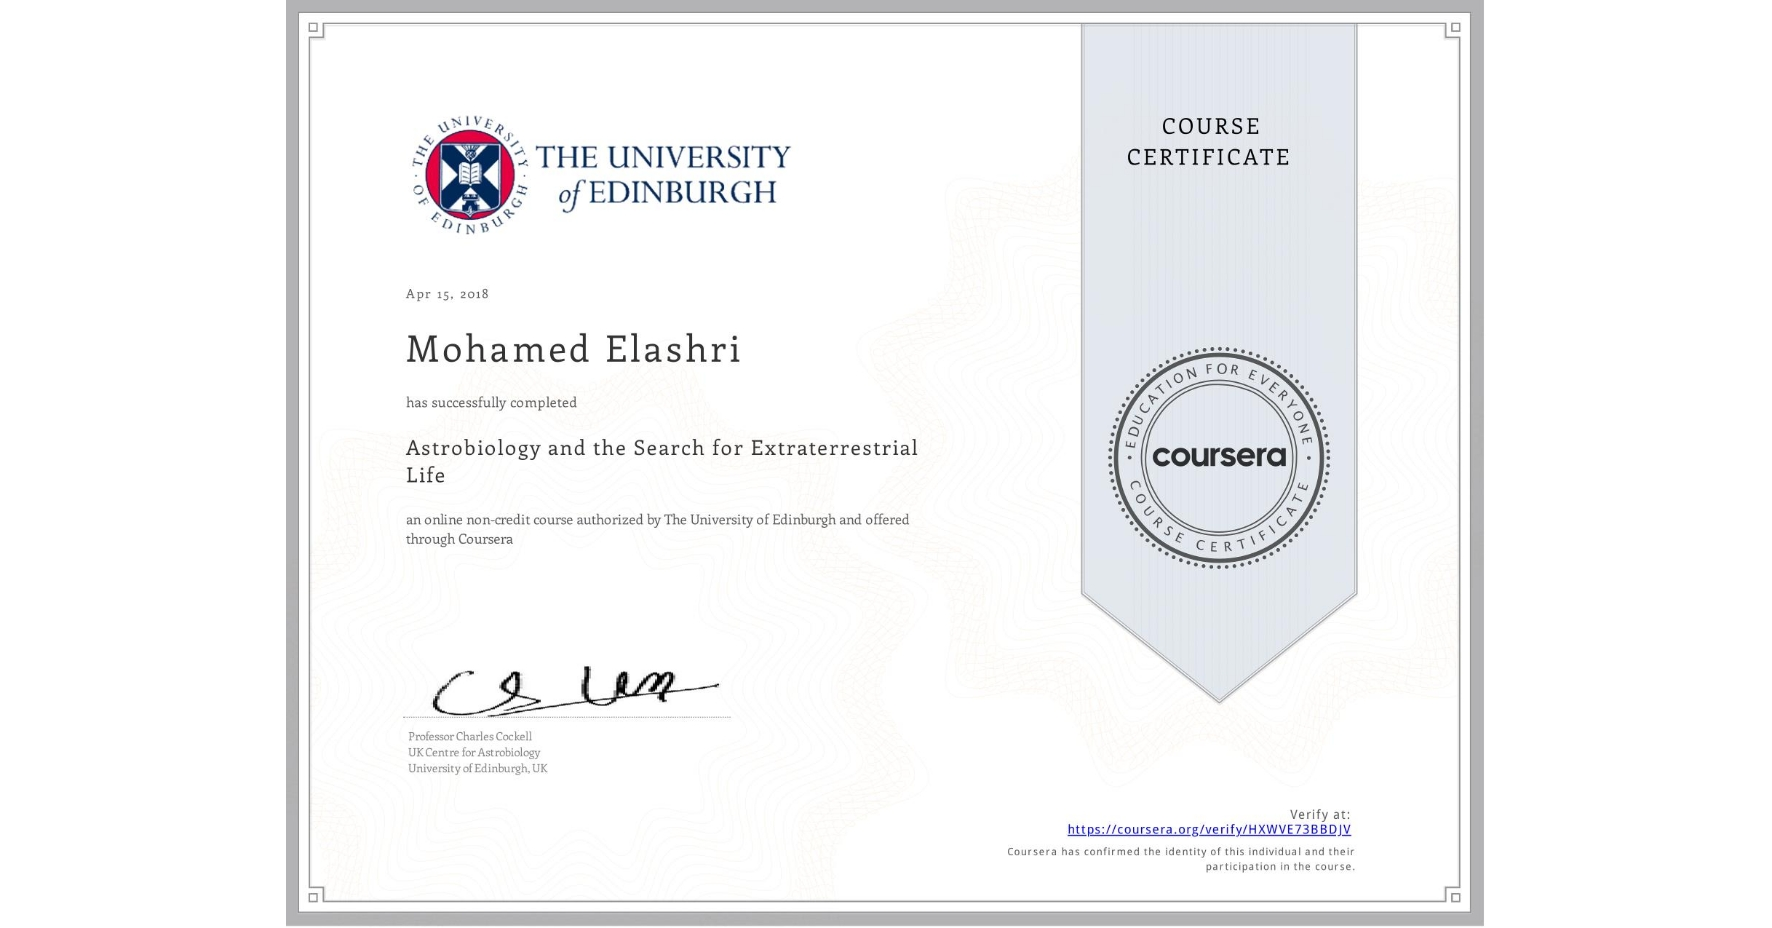 View certificate for Mohamed Elashri, Astrobiology and the Search for Extraterrestrial Life, an online non-credit course authorized by The University of Edinburgh and offered through Coursera